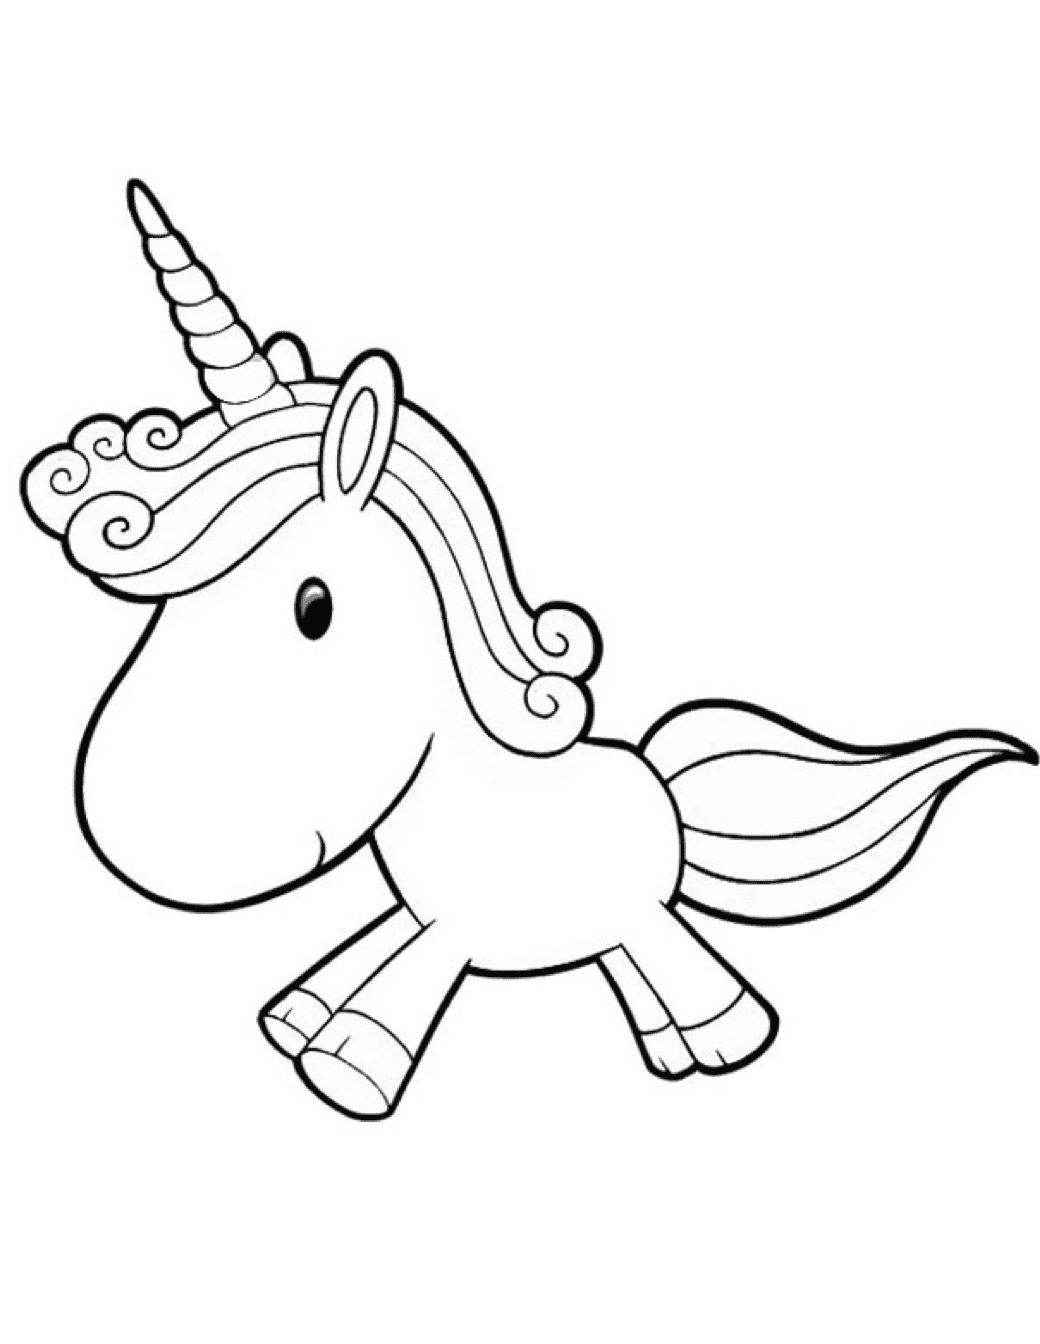 Unicorn Coloring Page Printable Cartoonunicorncoloringpage  Coloringpagebook